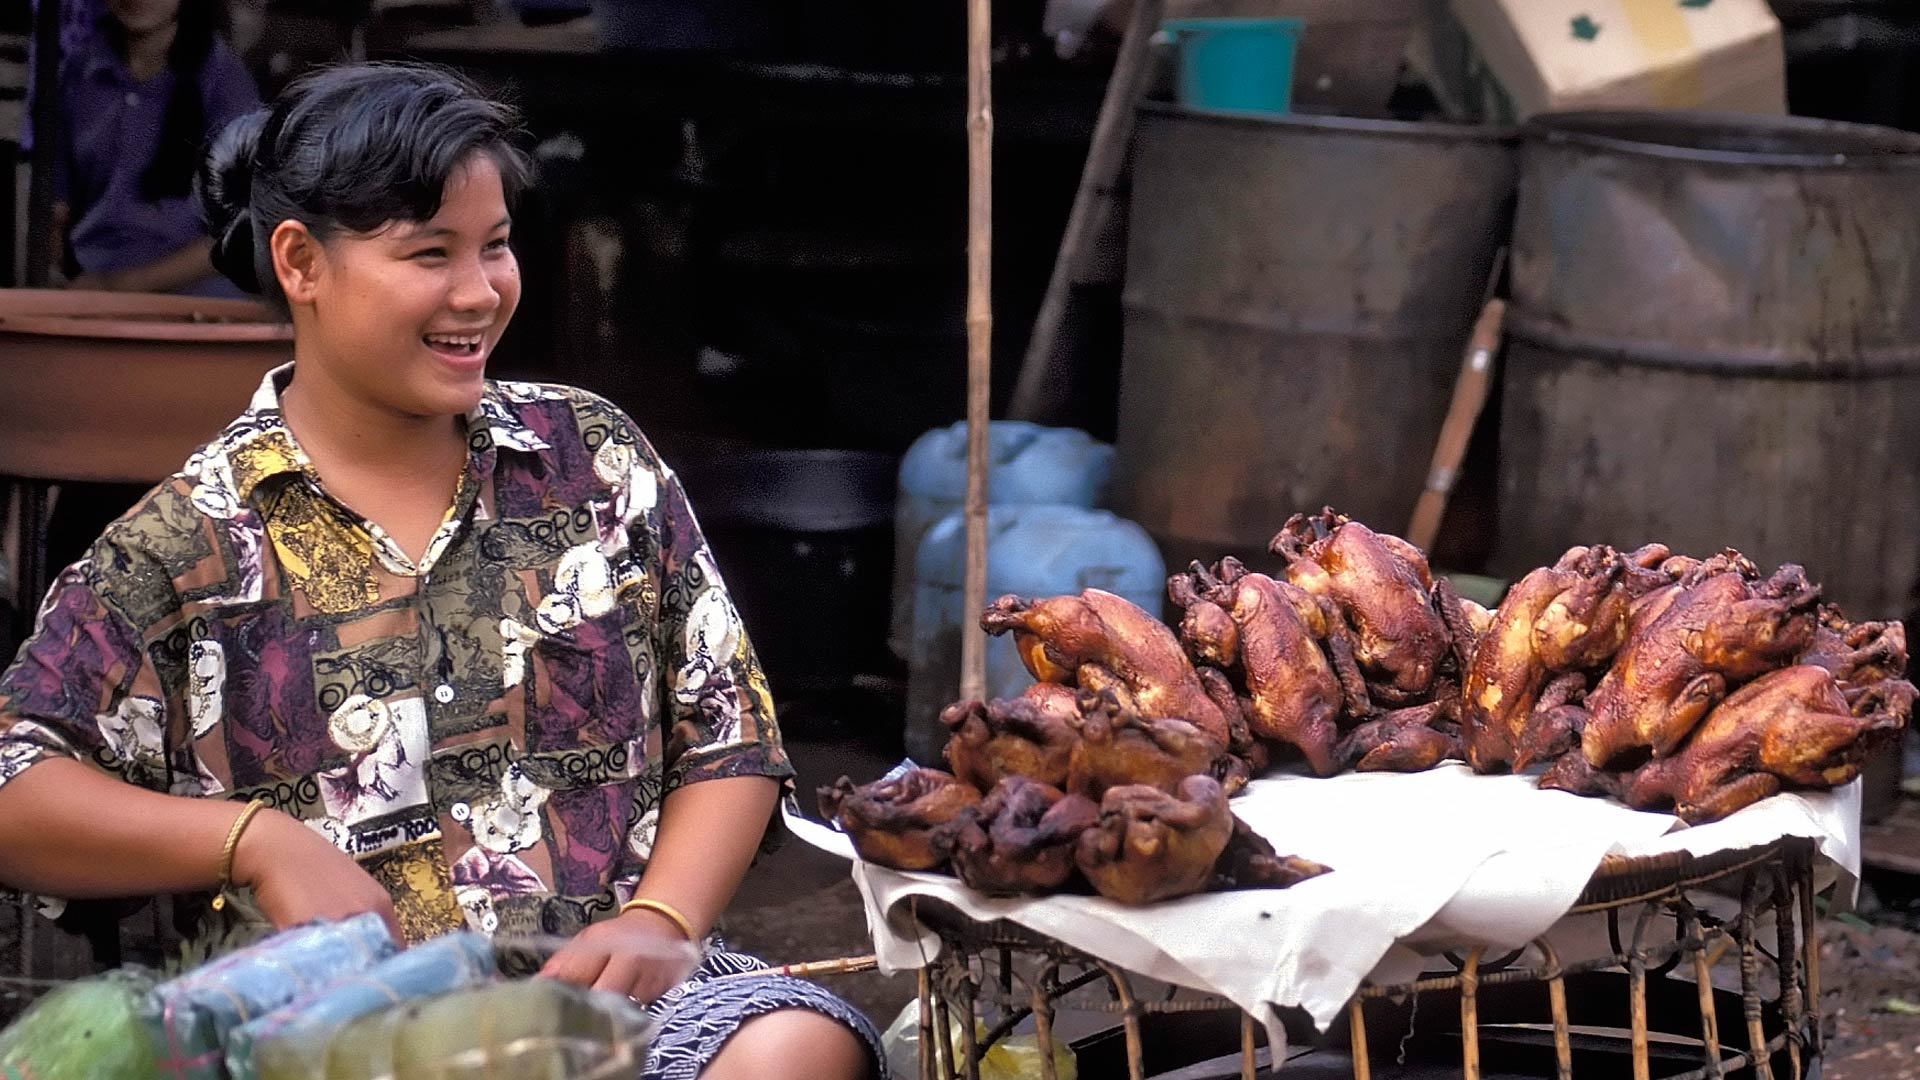 Roasted chicken vendor at the Thong Khan Kam Market, Vientiane, Laos